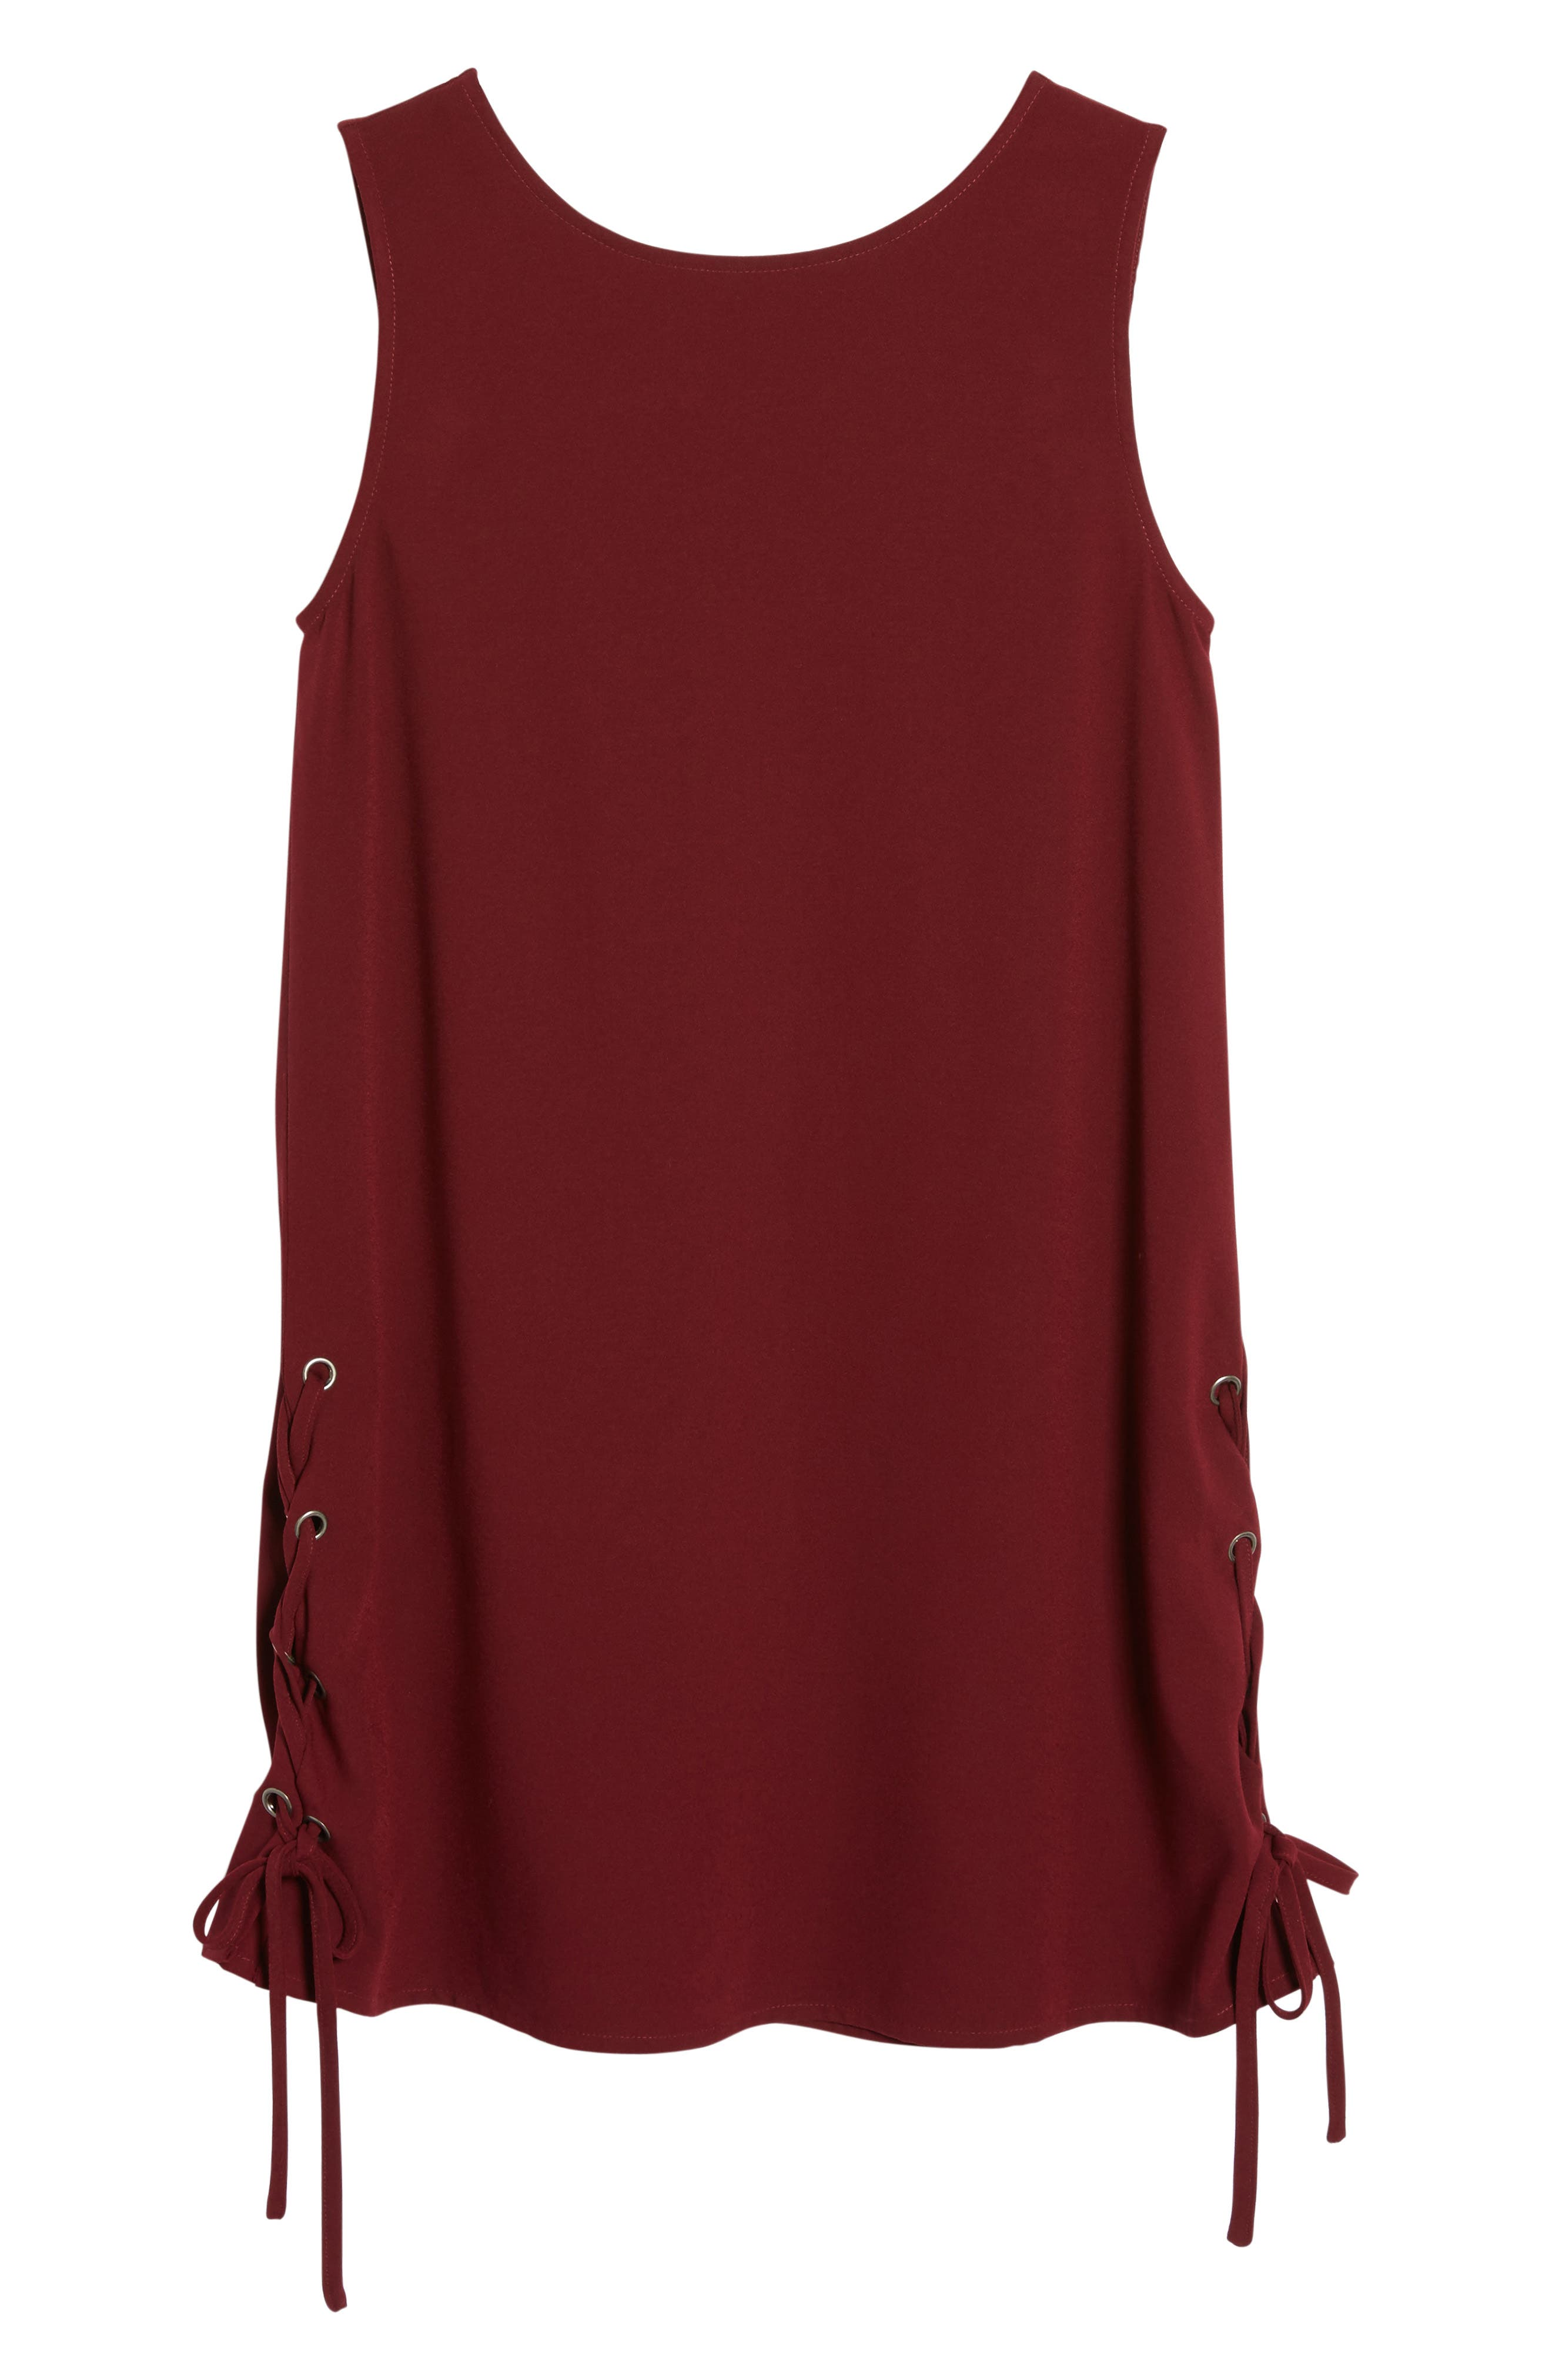 Timberly Lace-Up Shift Dress,                             Alternate thumbnail 6, color,                             934